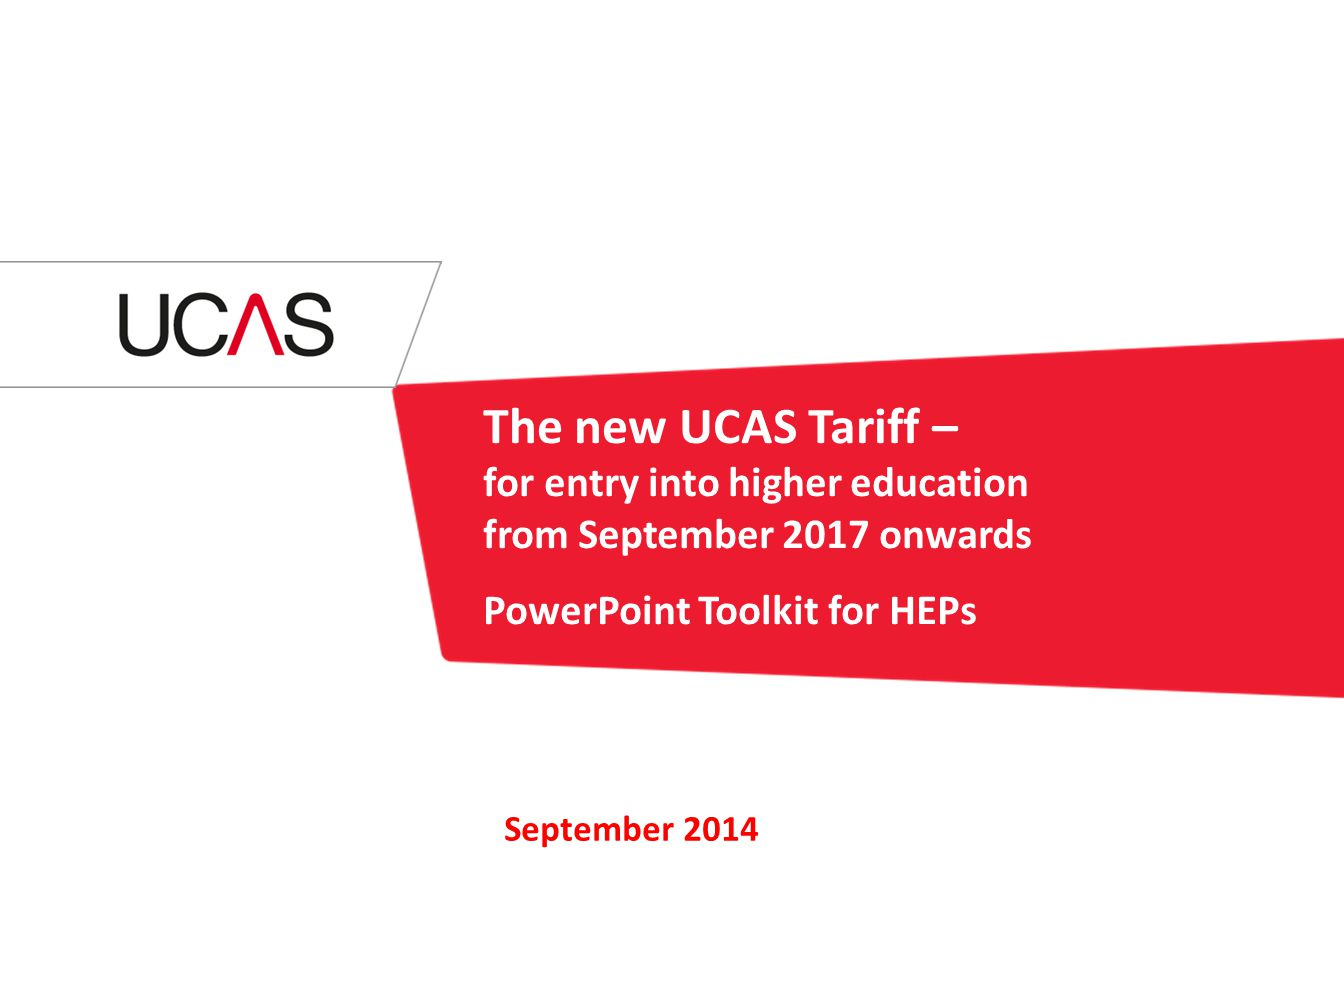 The new UCAS Tariff – for entry into higher education from September 2017 onwards PowerPoint Toolkit for HEPs